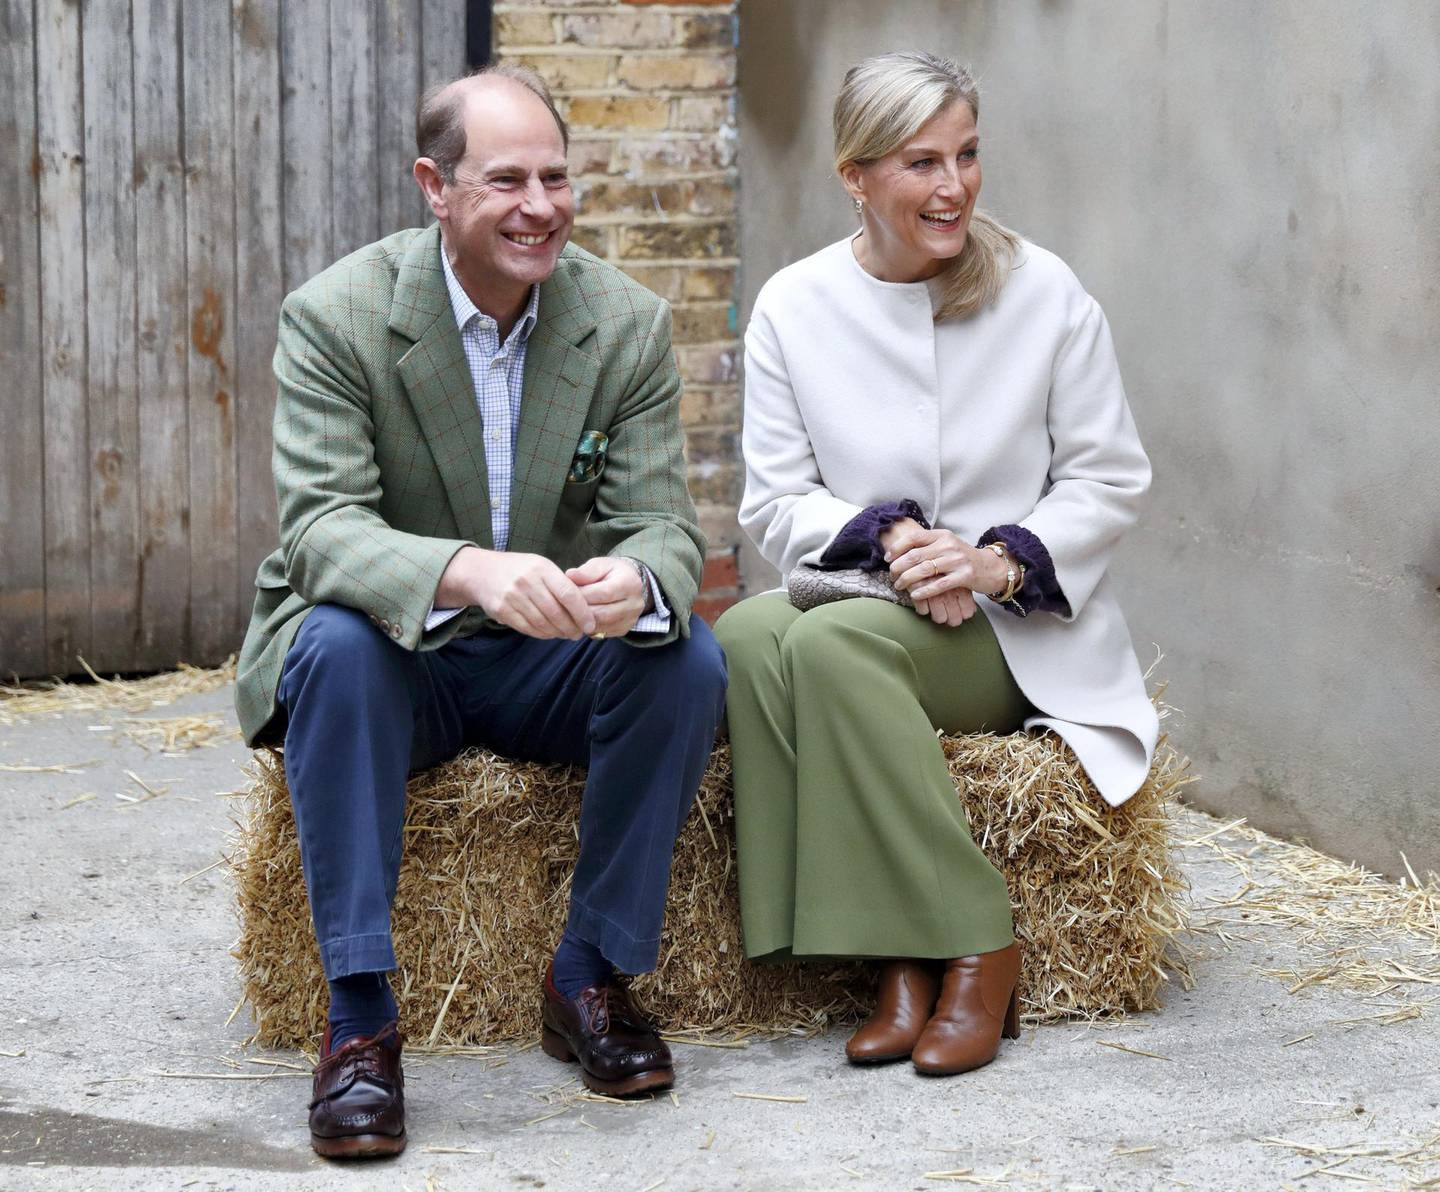 LONDON, UNITED KINGDOM - OCTOBER 01: (EMBARGOED FOR PUBLICATION IN UK NEWSPAPERS UNTIL 24 HOURS AFTER CREATE DATE AND TIME) Prince Edward, Earl of Wessex and Sophie, Countess of Wessex sit on a hay bale during a visit to Vauxhall City Farm on October 1, 2020 in London, England. Their Royal Highnesses visit is to see the farm's community engagement and education programmes in action, as the farm marks the start of Black History Month. (Photo by Max Mumby/Indigo/Getty Images)